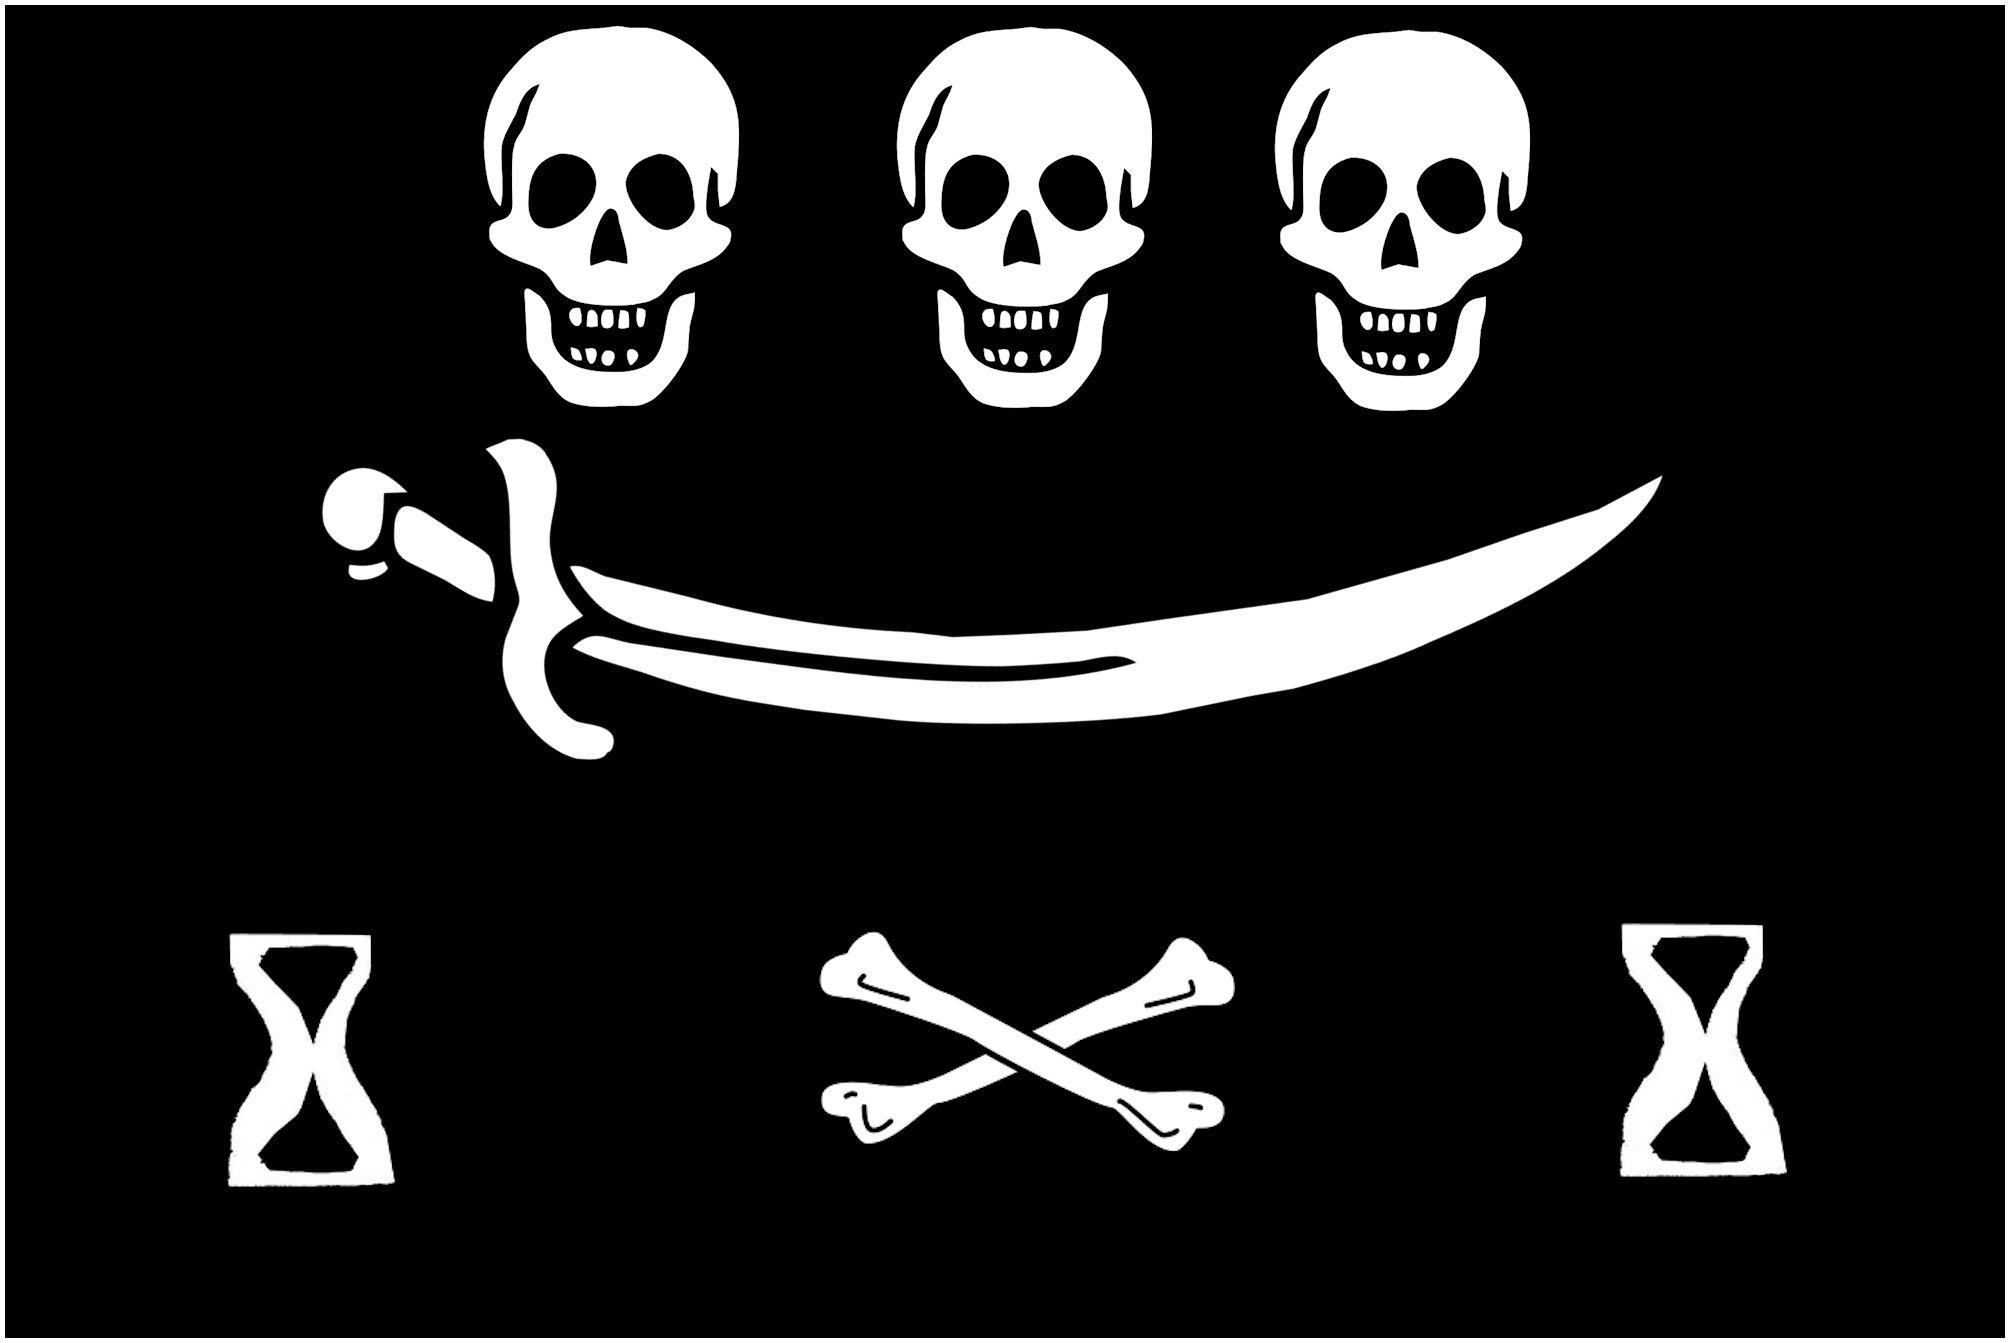 897184af377 Jolly Roger - Wikiwand